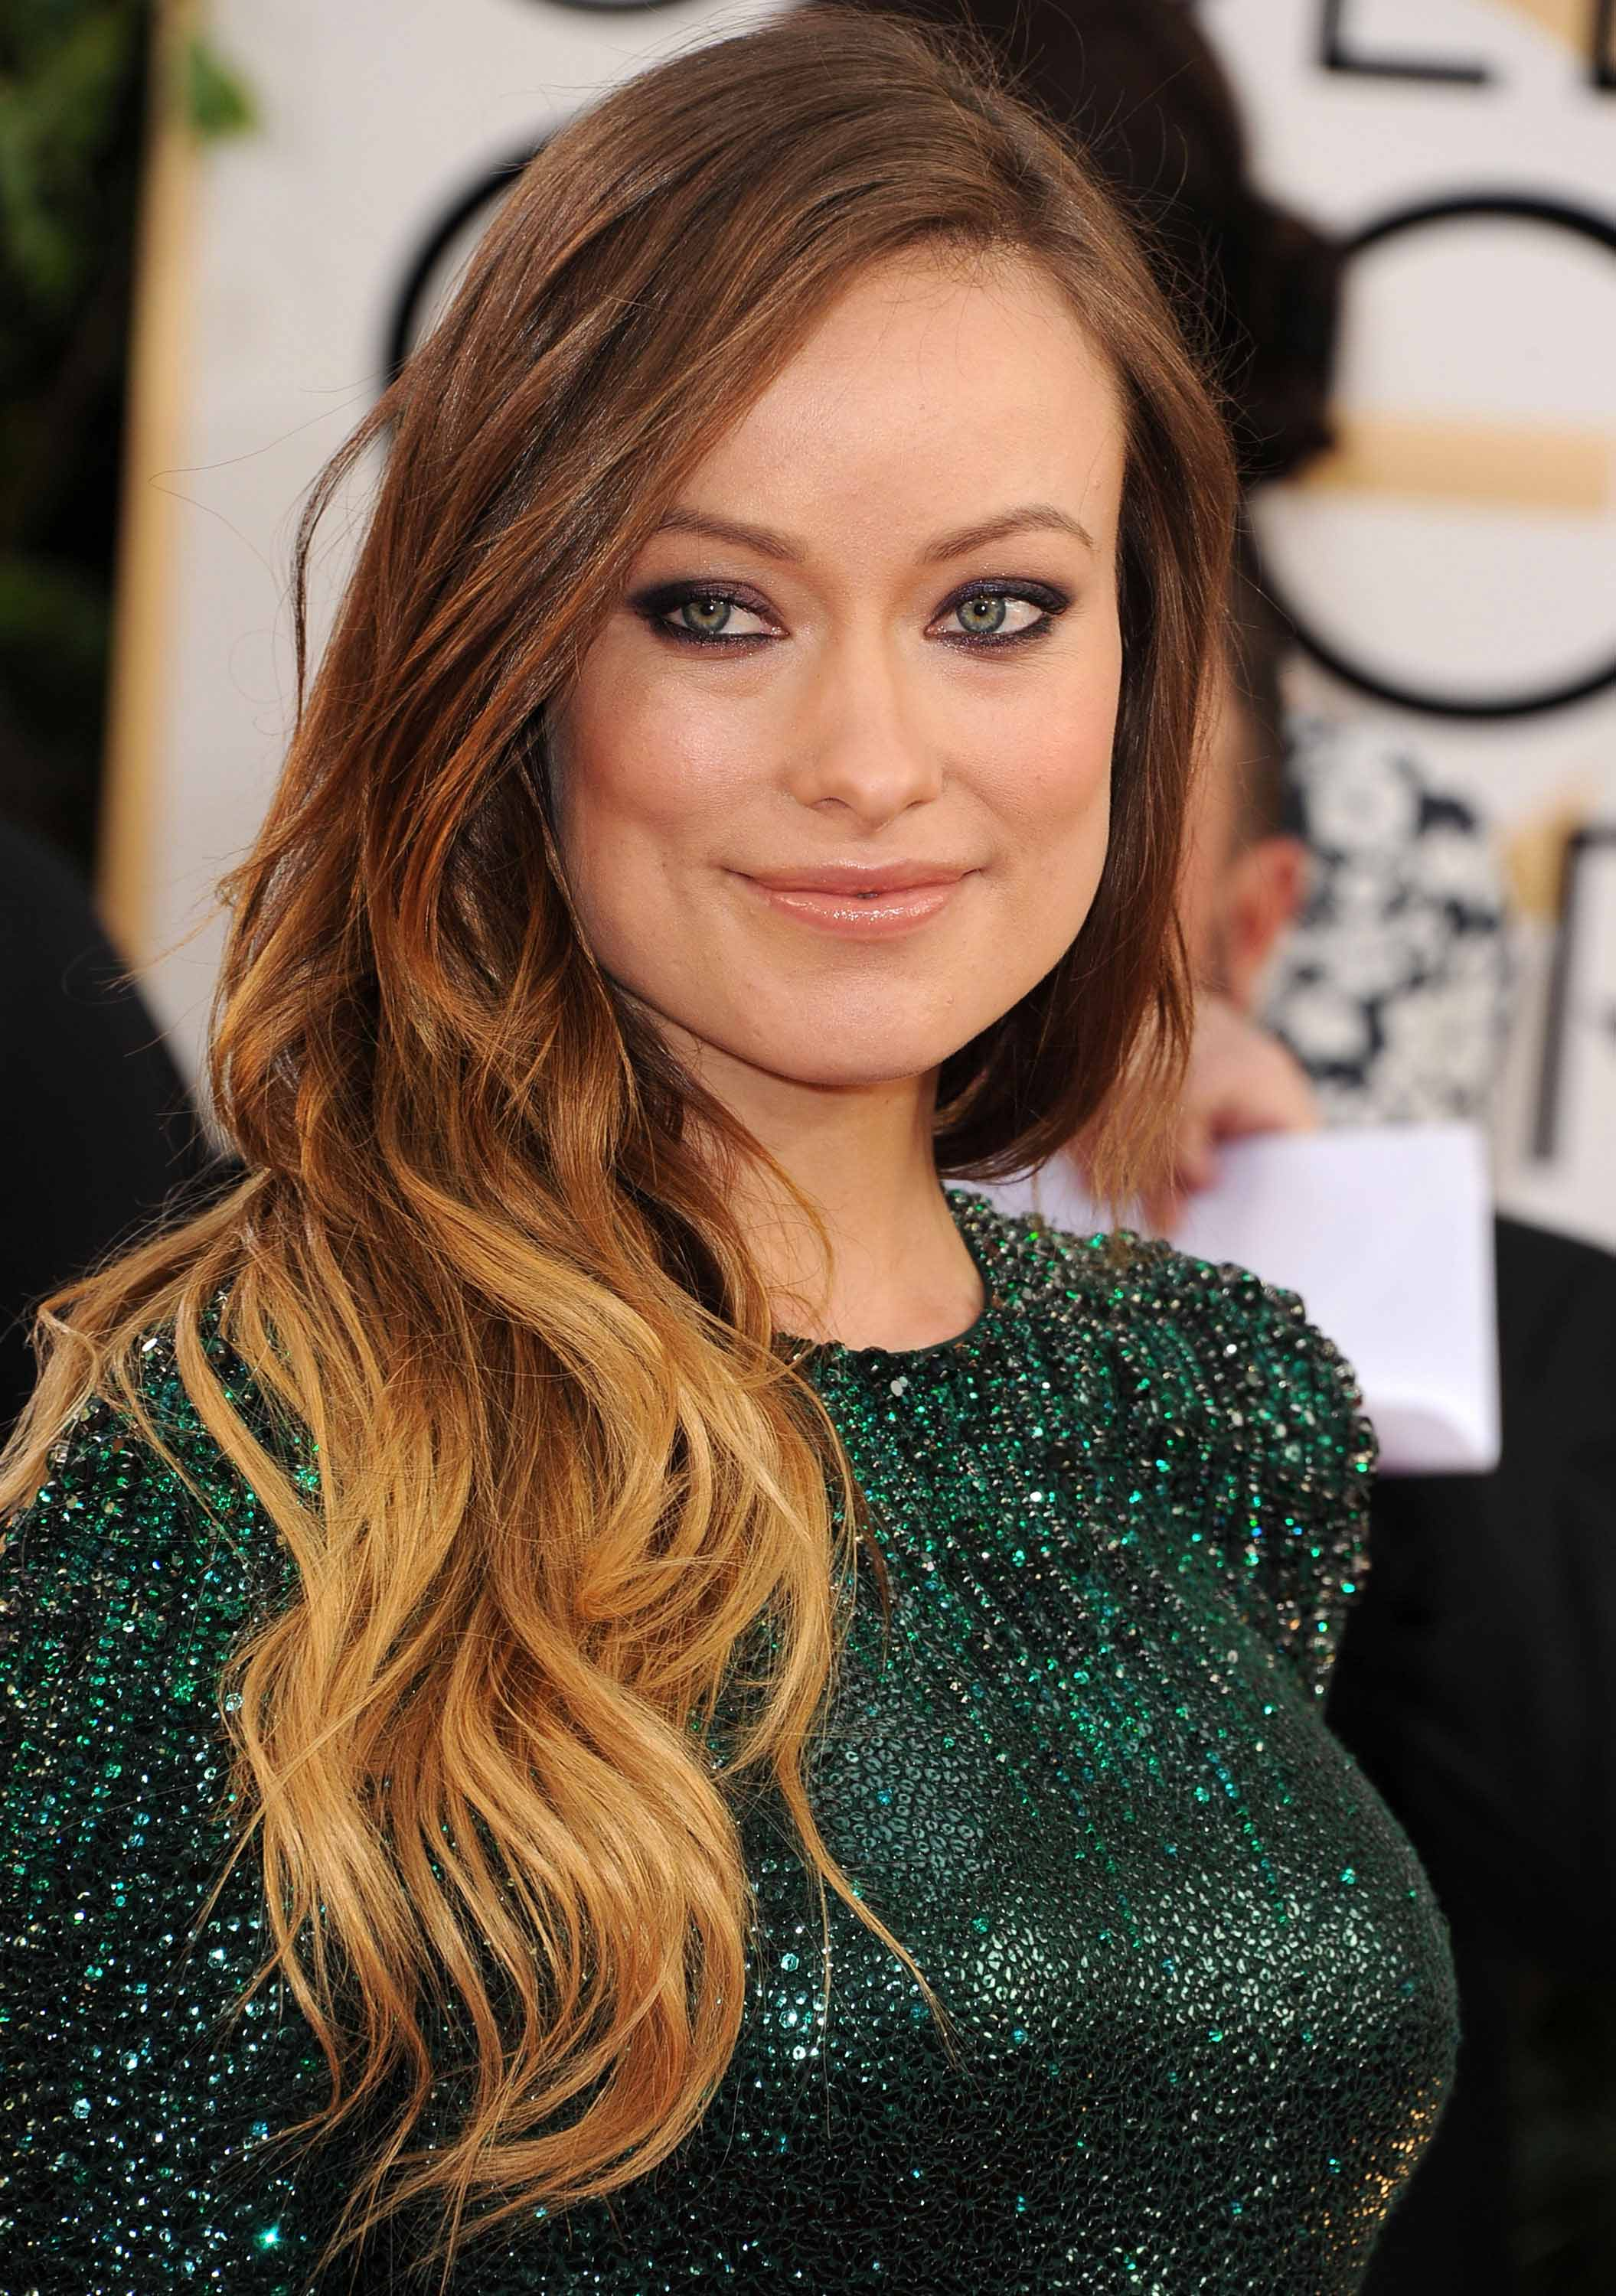 Olivia Wilde Profile And New Pictures 2013: Get The Look: Olivia Wilde's Sexy Smoky Eye At The 2014